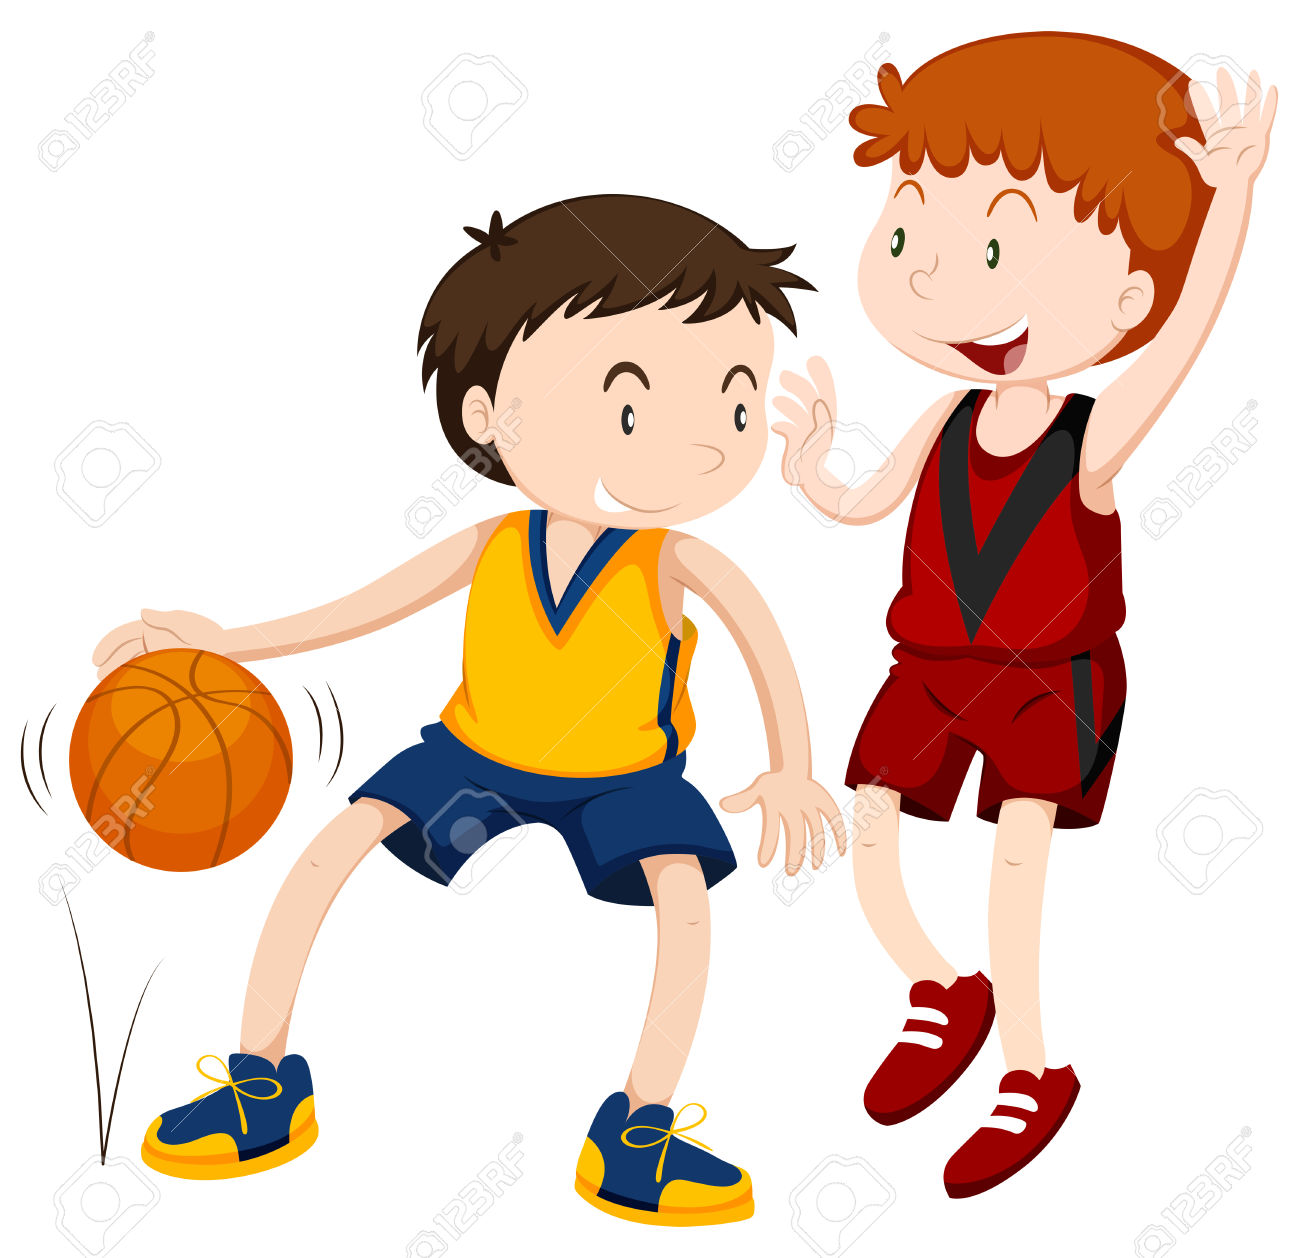 Children clipart basketball for free download and use images in.